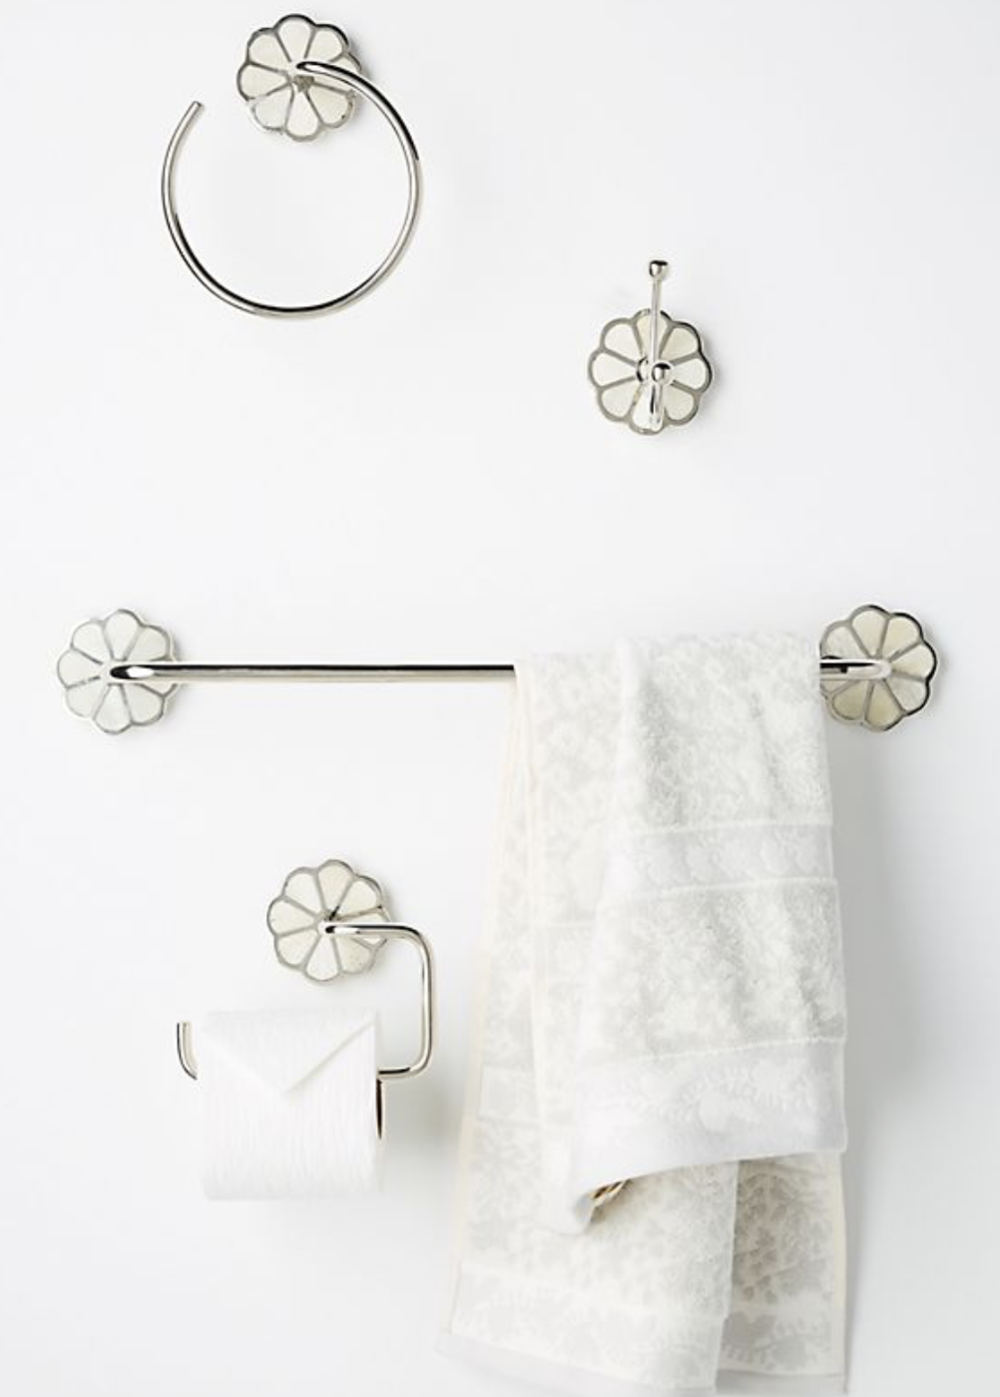 kids bathroom decor - loving this for the renovation of a kid's bathroom, cheeky yet still refined.